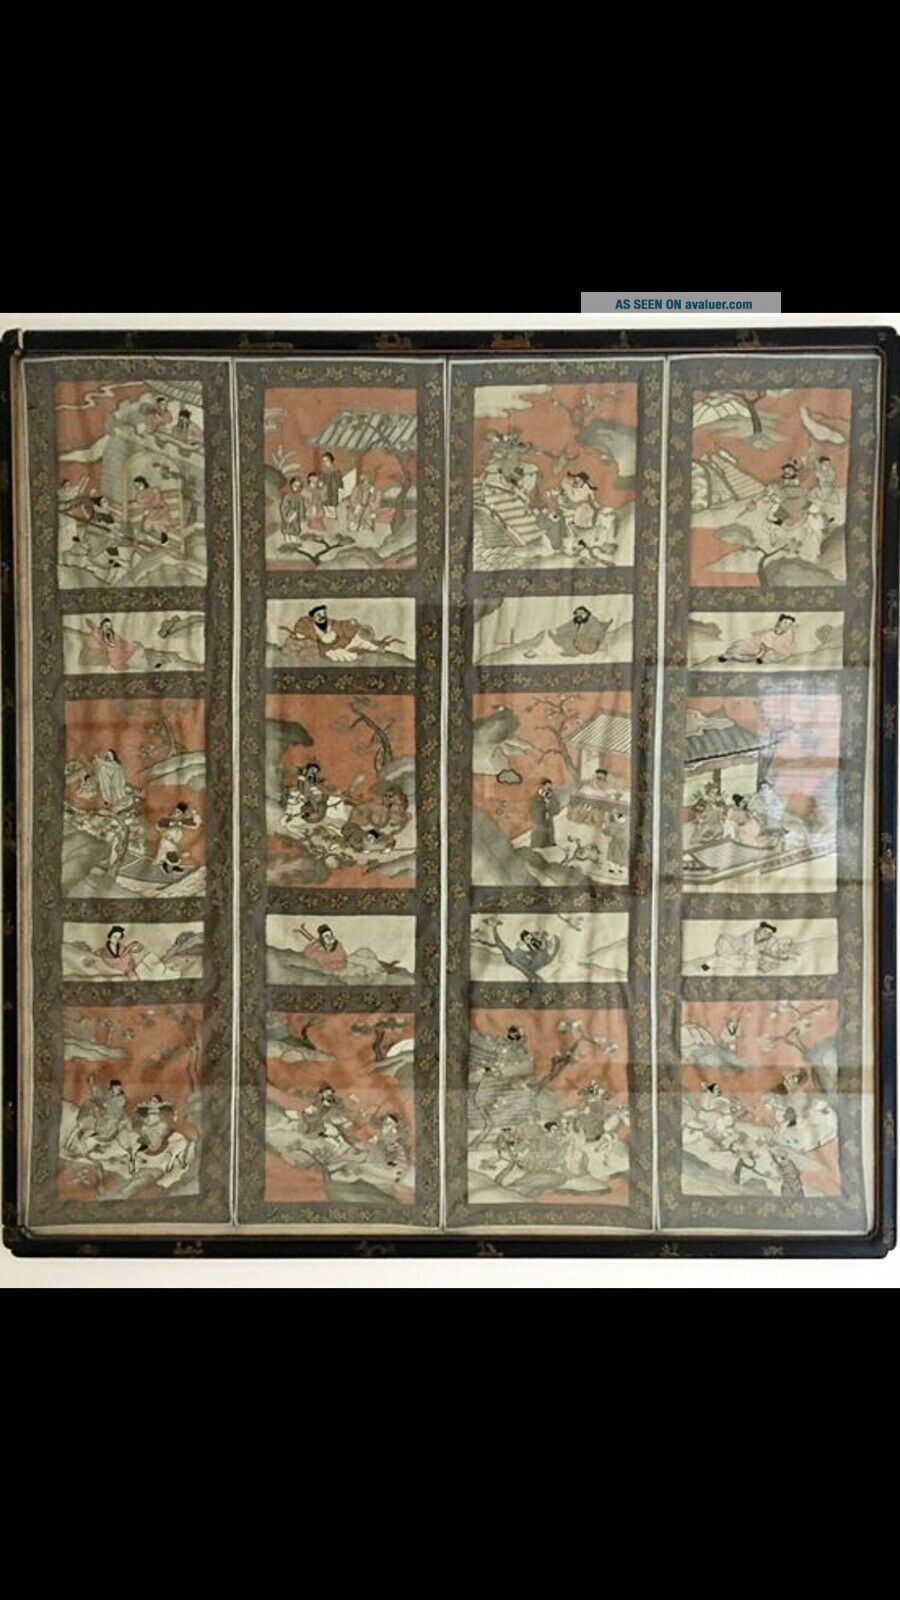 Antique Chinese Kesi Embroidery 4 Panel Tapestry 8 IMMORTALS Deities 40x42